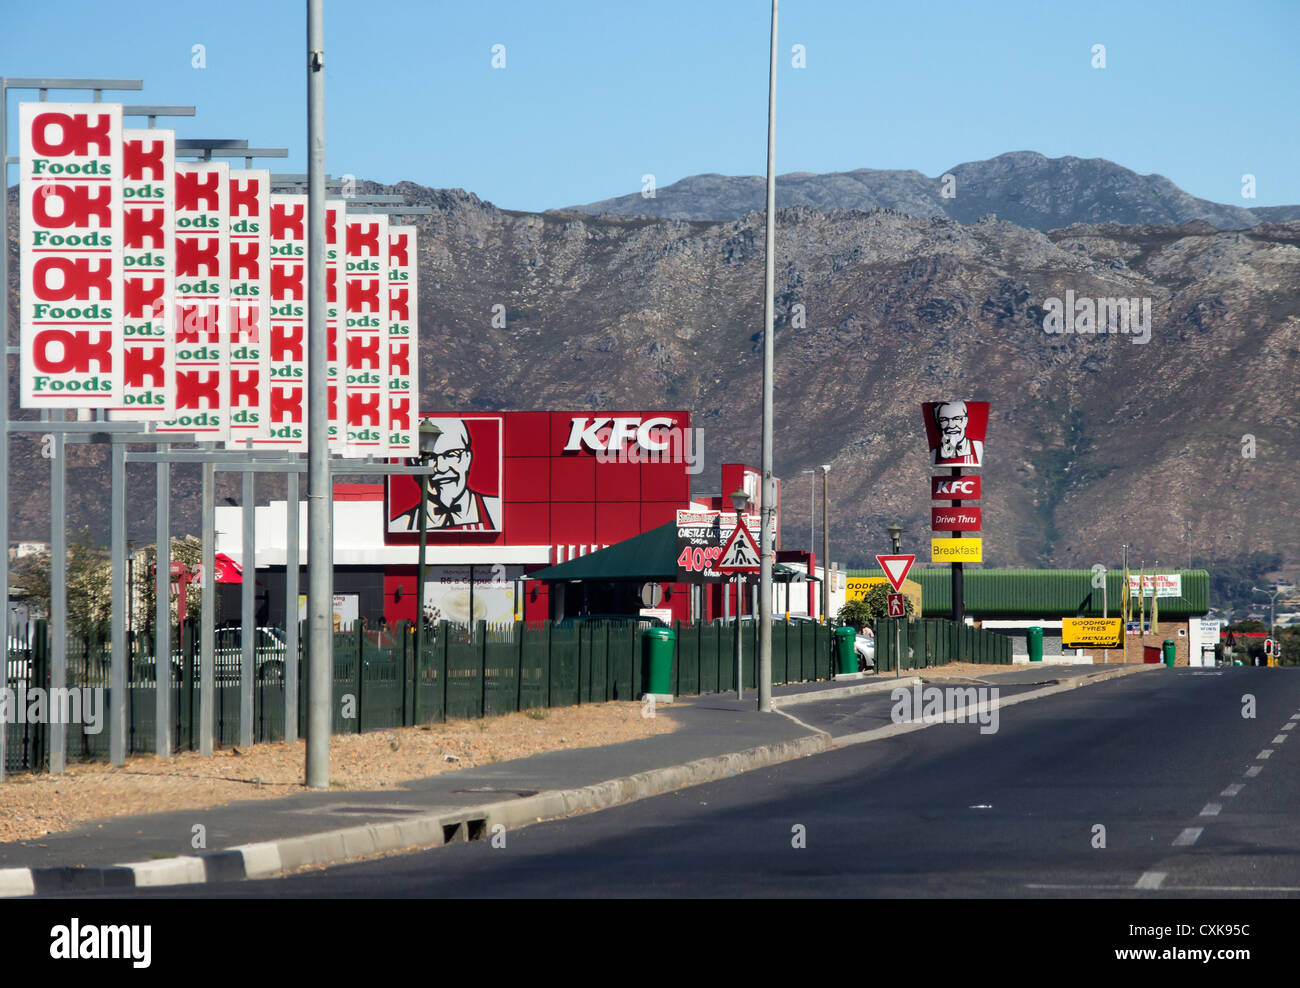 OK Store and KFC ads against a mountainous backdrop near Gordon's Bay, Western Cape,South Africa - Stock Image